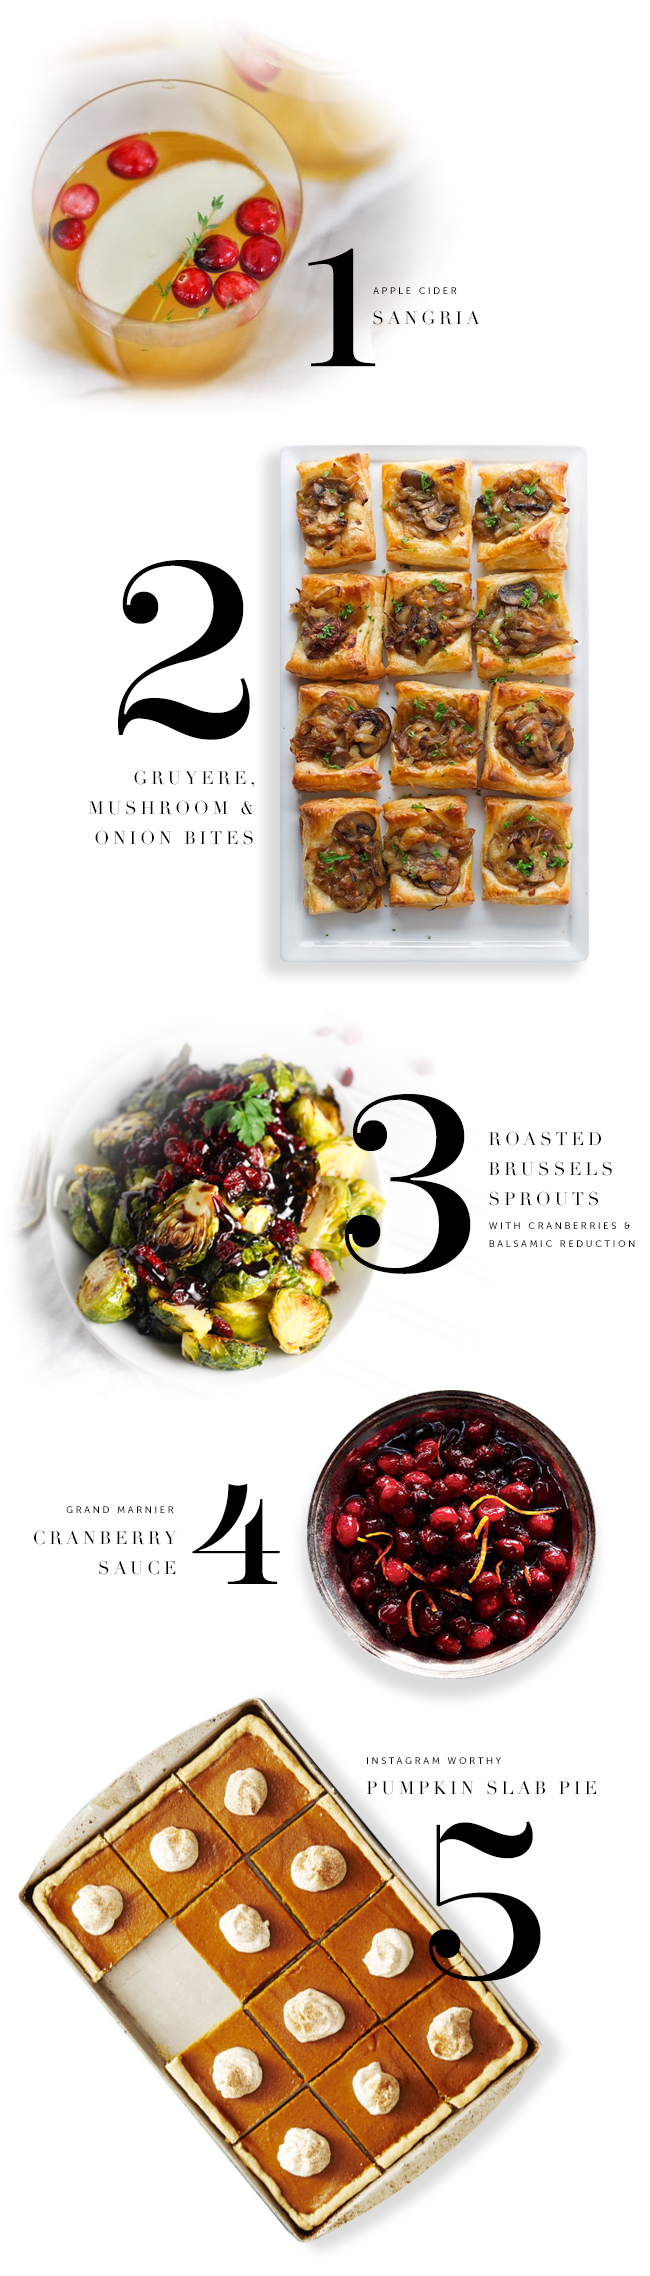 5 Recipes for Thanksgiving